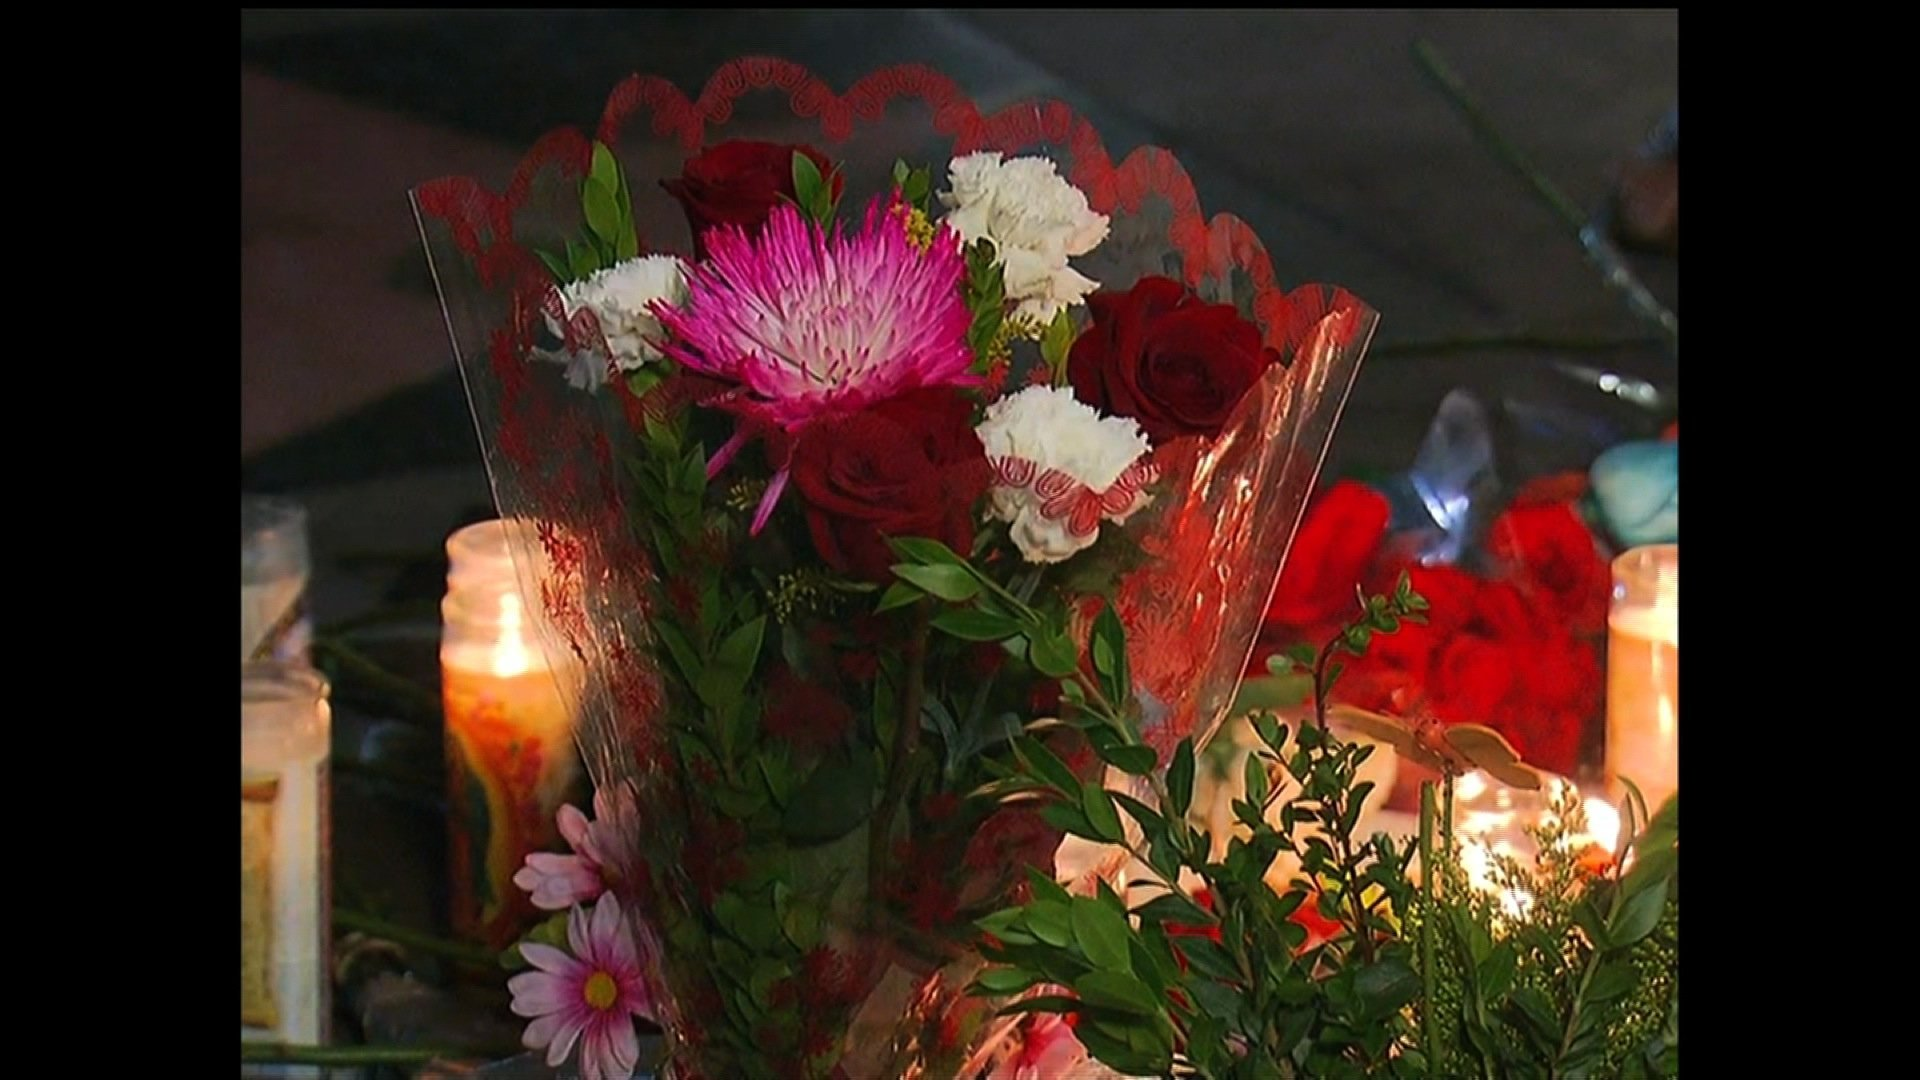 A Vigil was held in Hollywood, California for Latin American music icon Juan Gabriel, who died at 66 on Sunday, August 28, 2017.